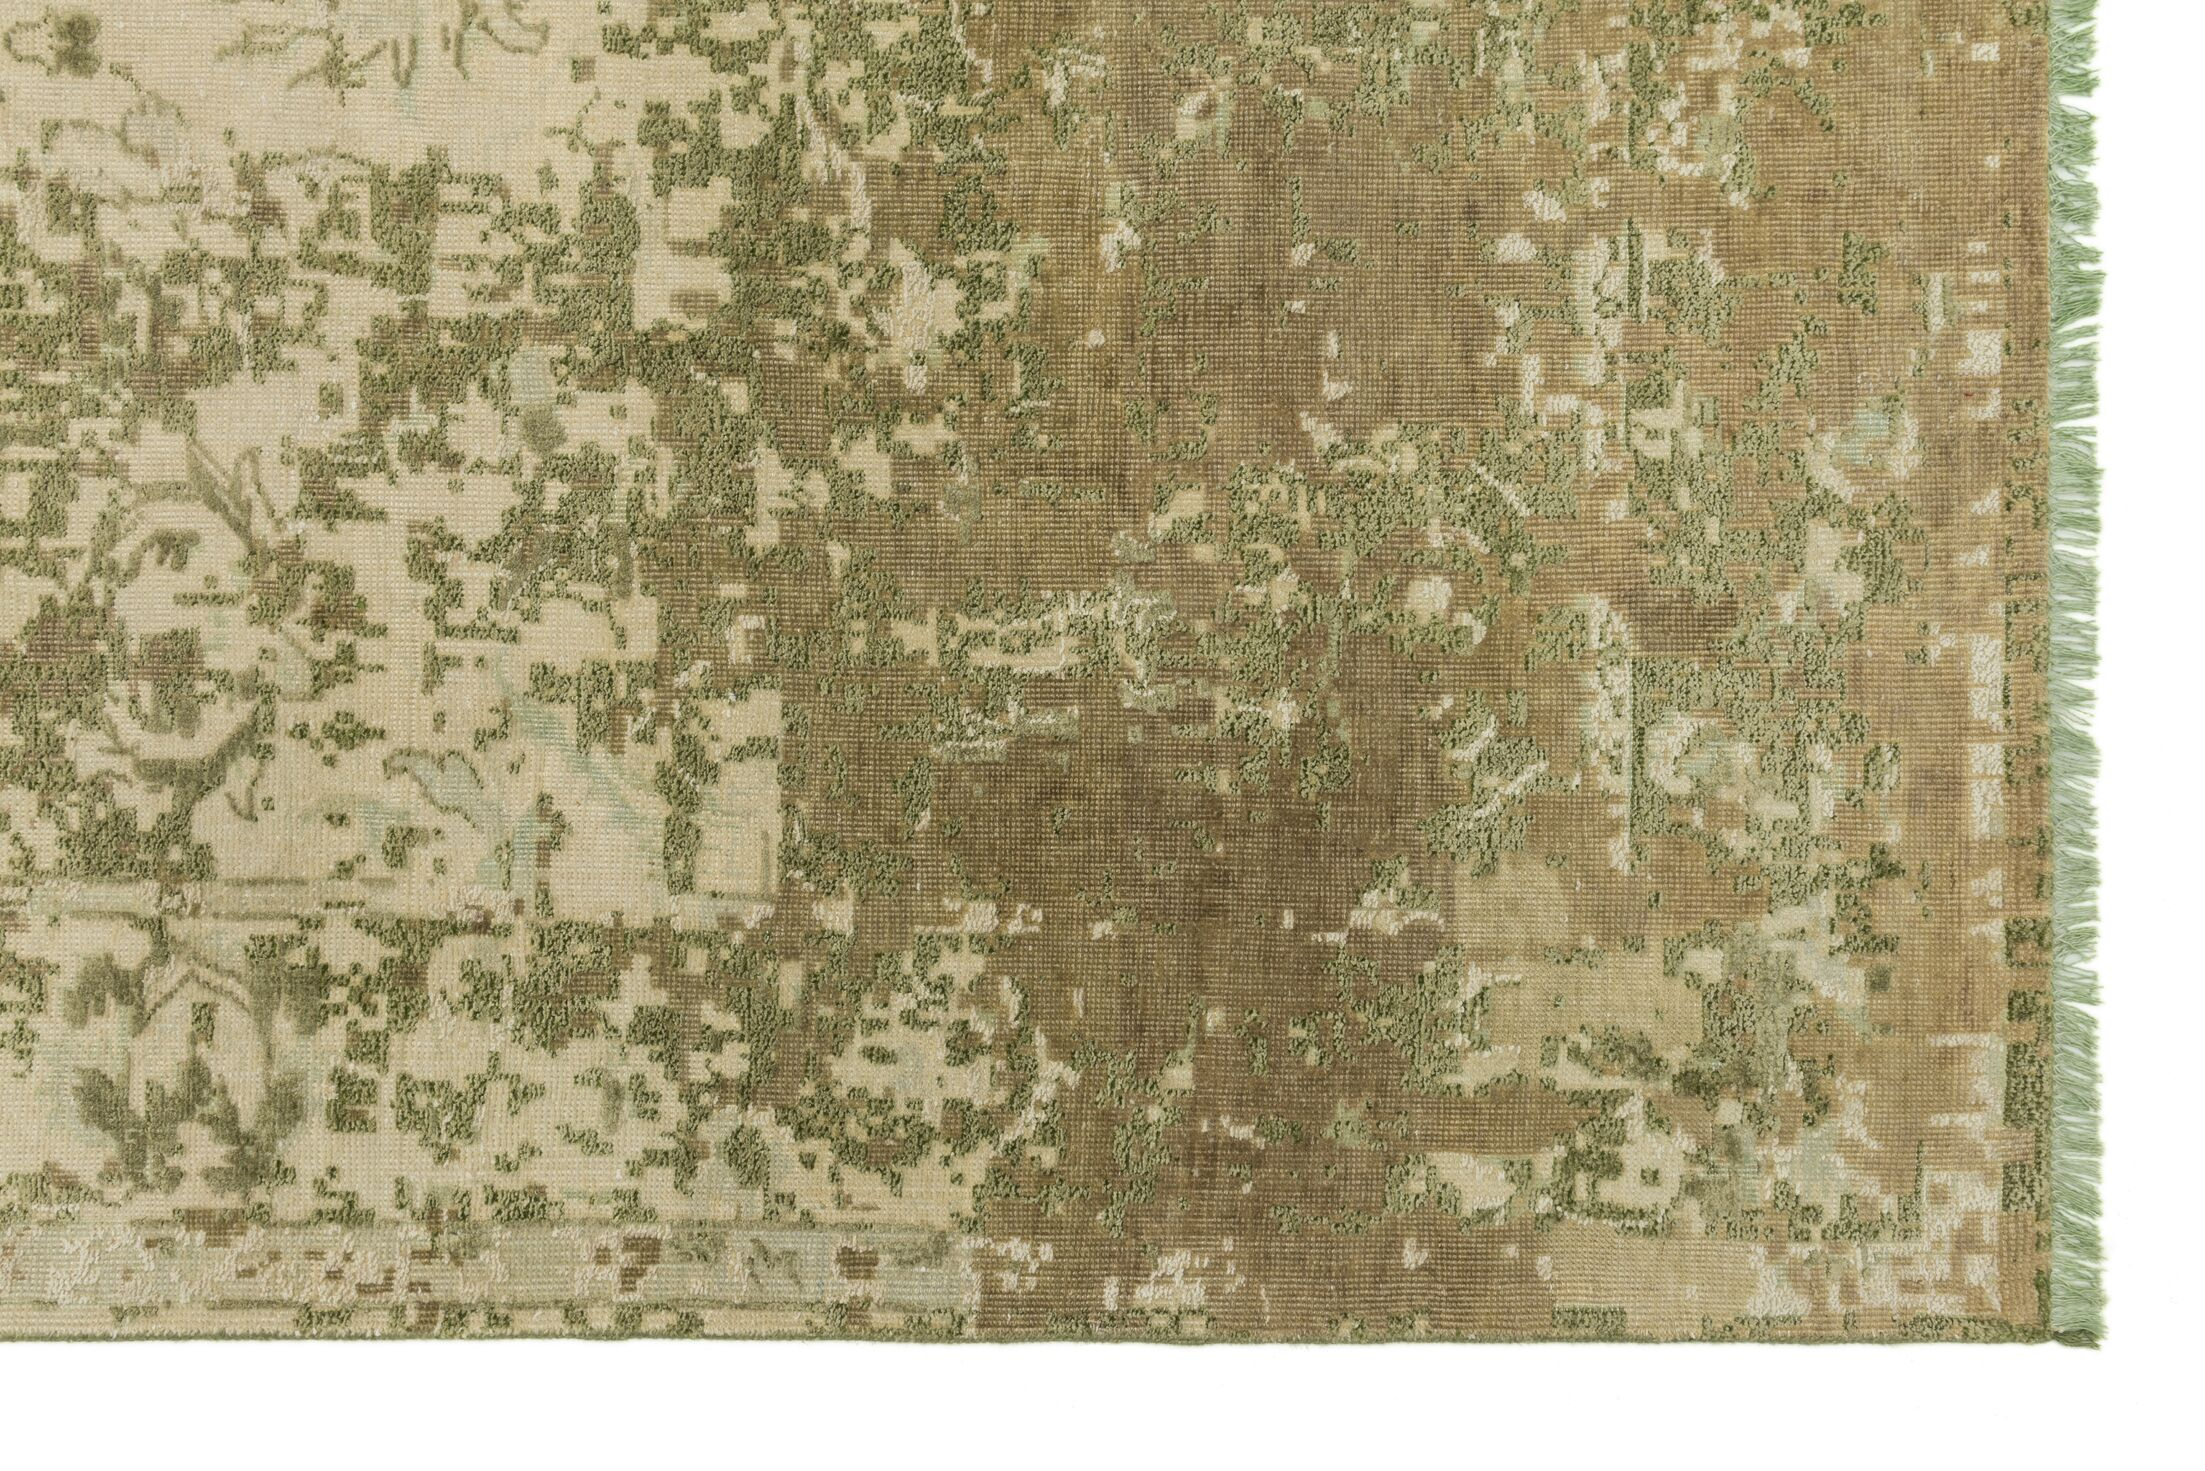 Keithley Hand-Knotted Sage Area Rug Rug Size: Rectangle 10' x 13'6